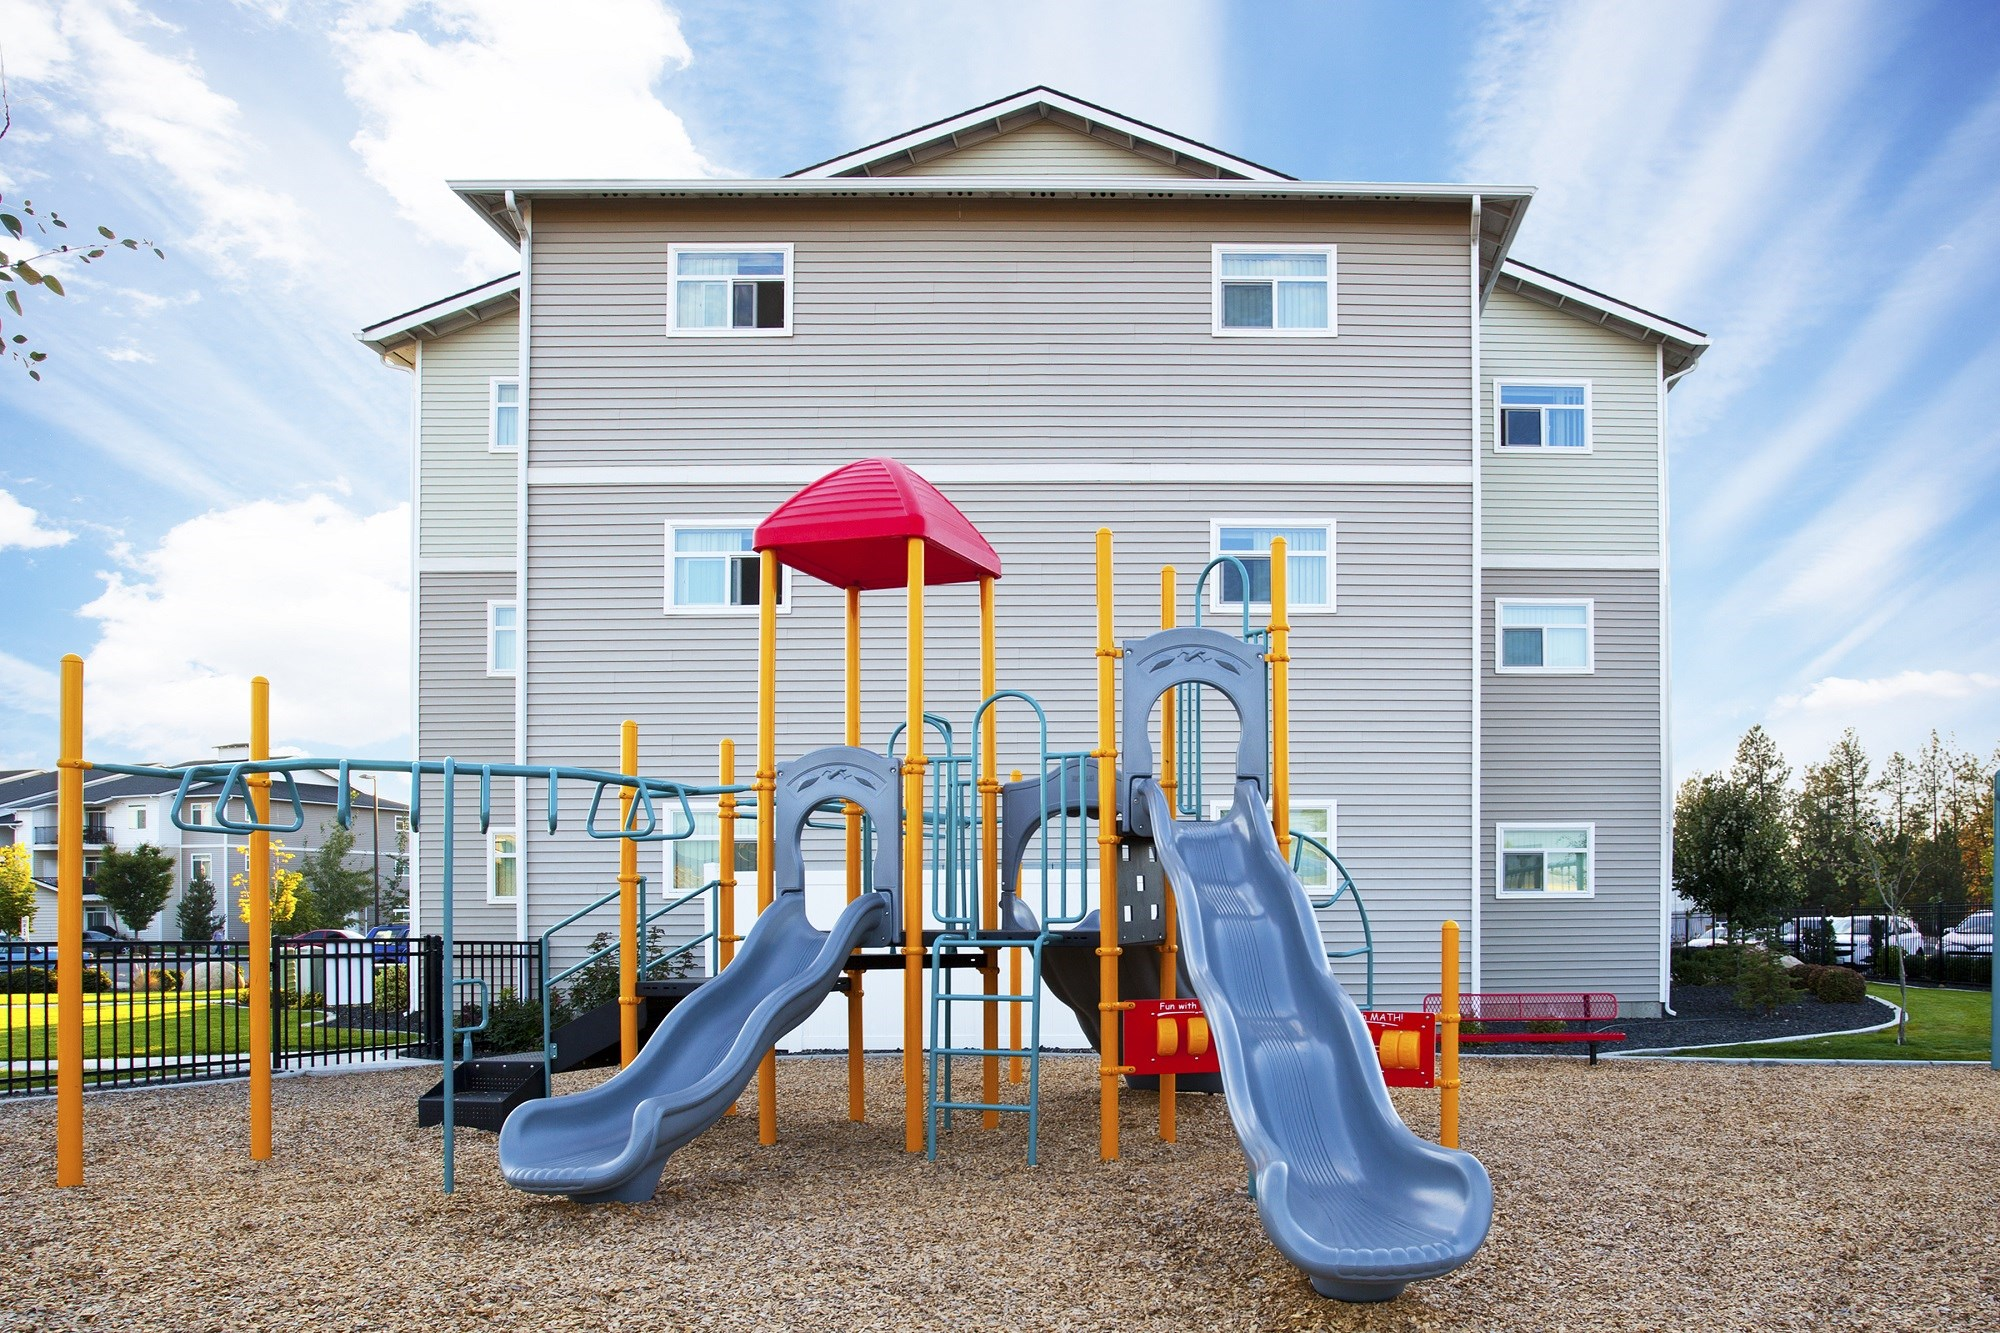 River House Apartments Playground